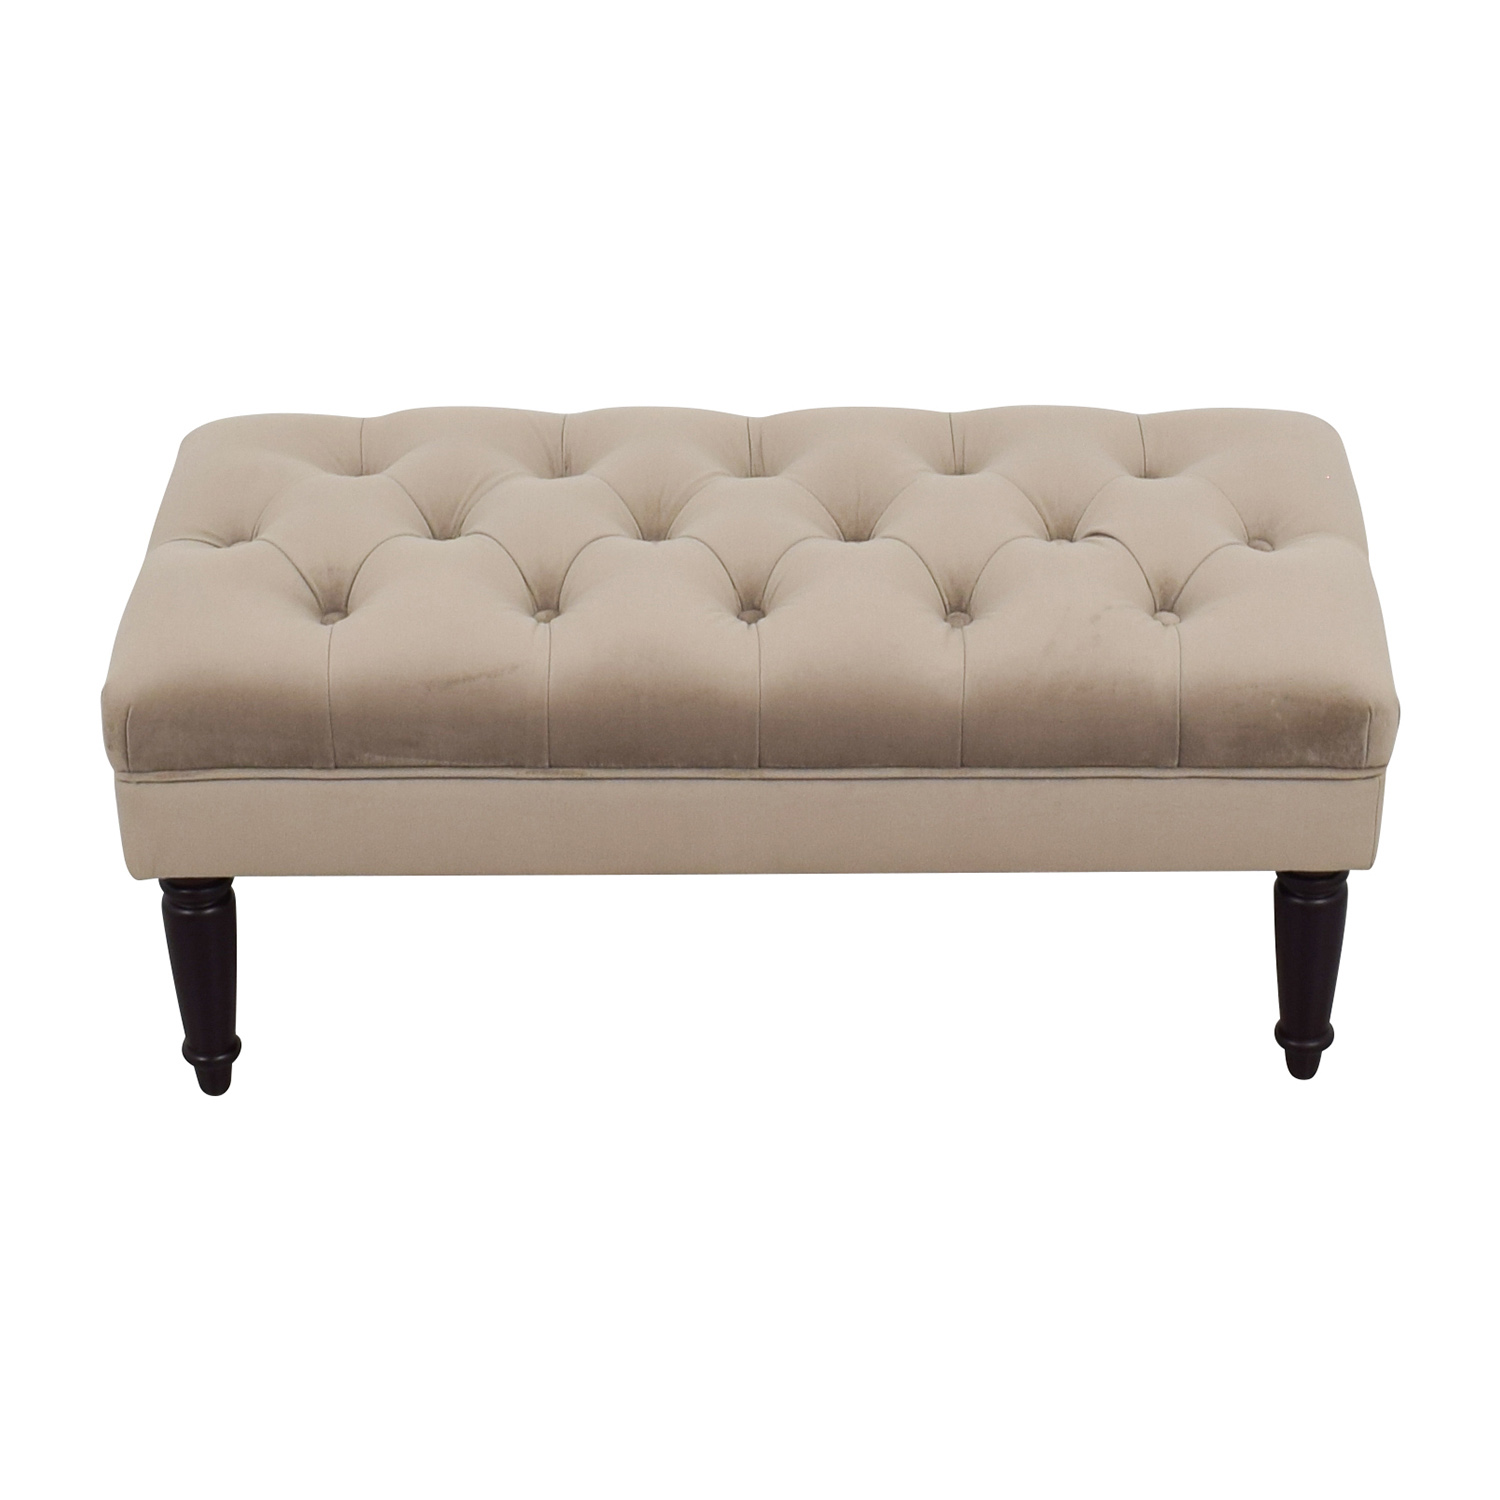 buy  Grey Tufted Ottoman online